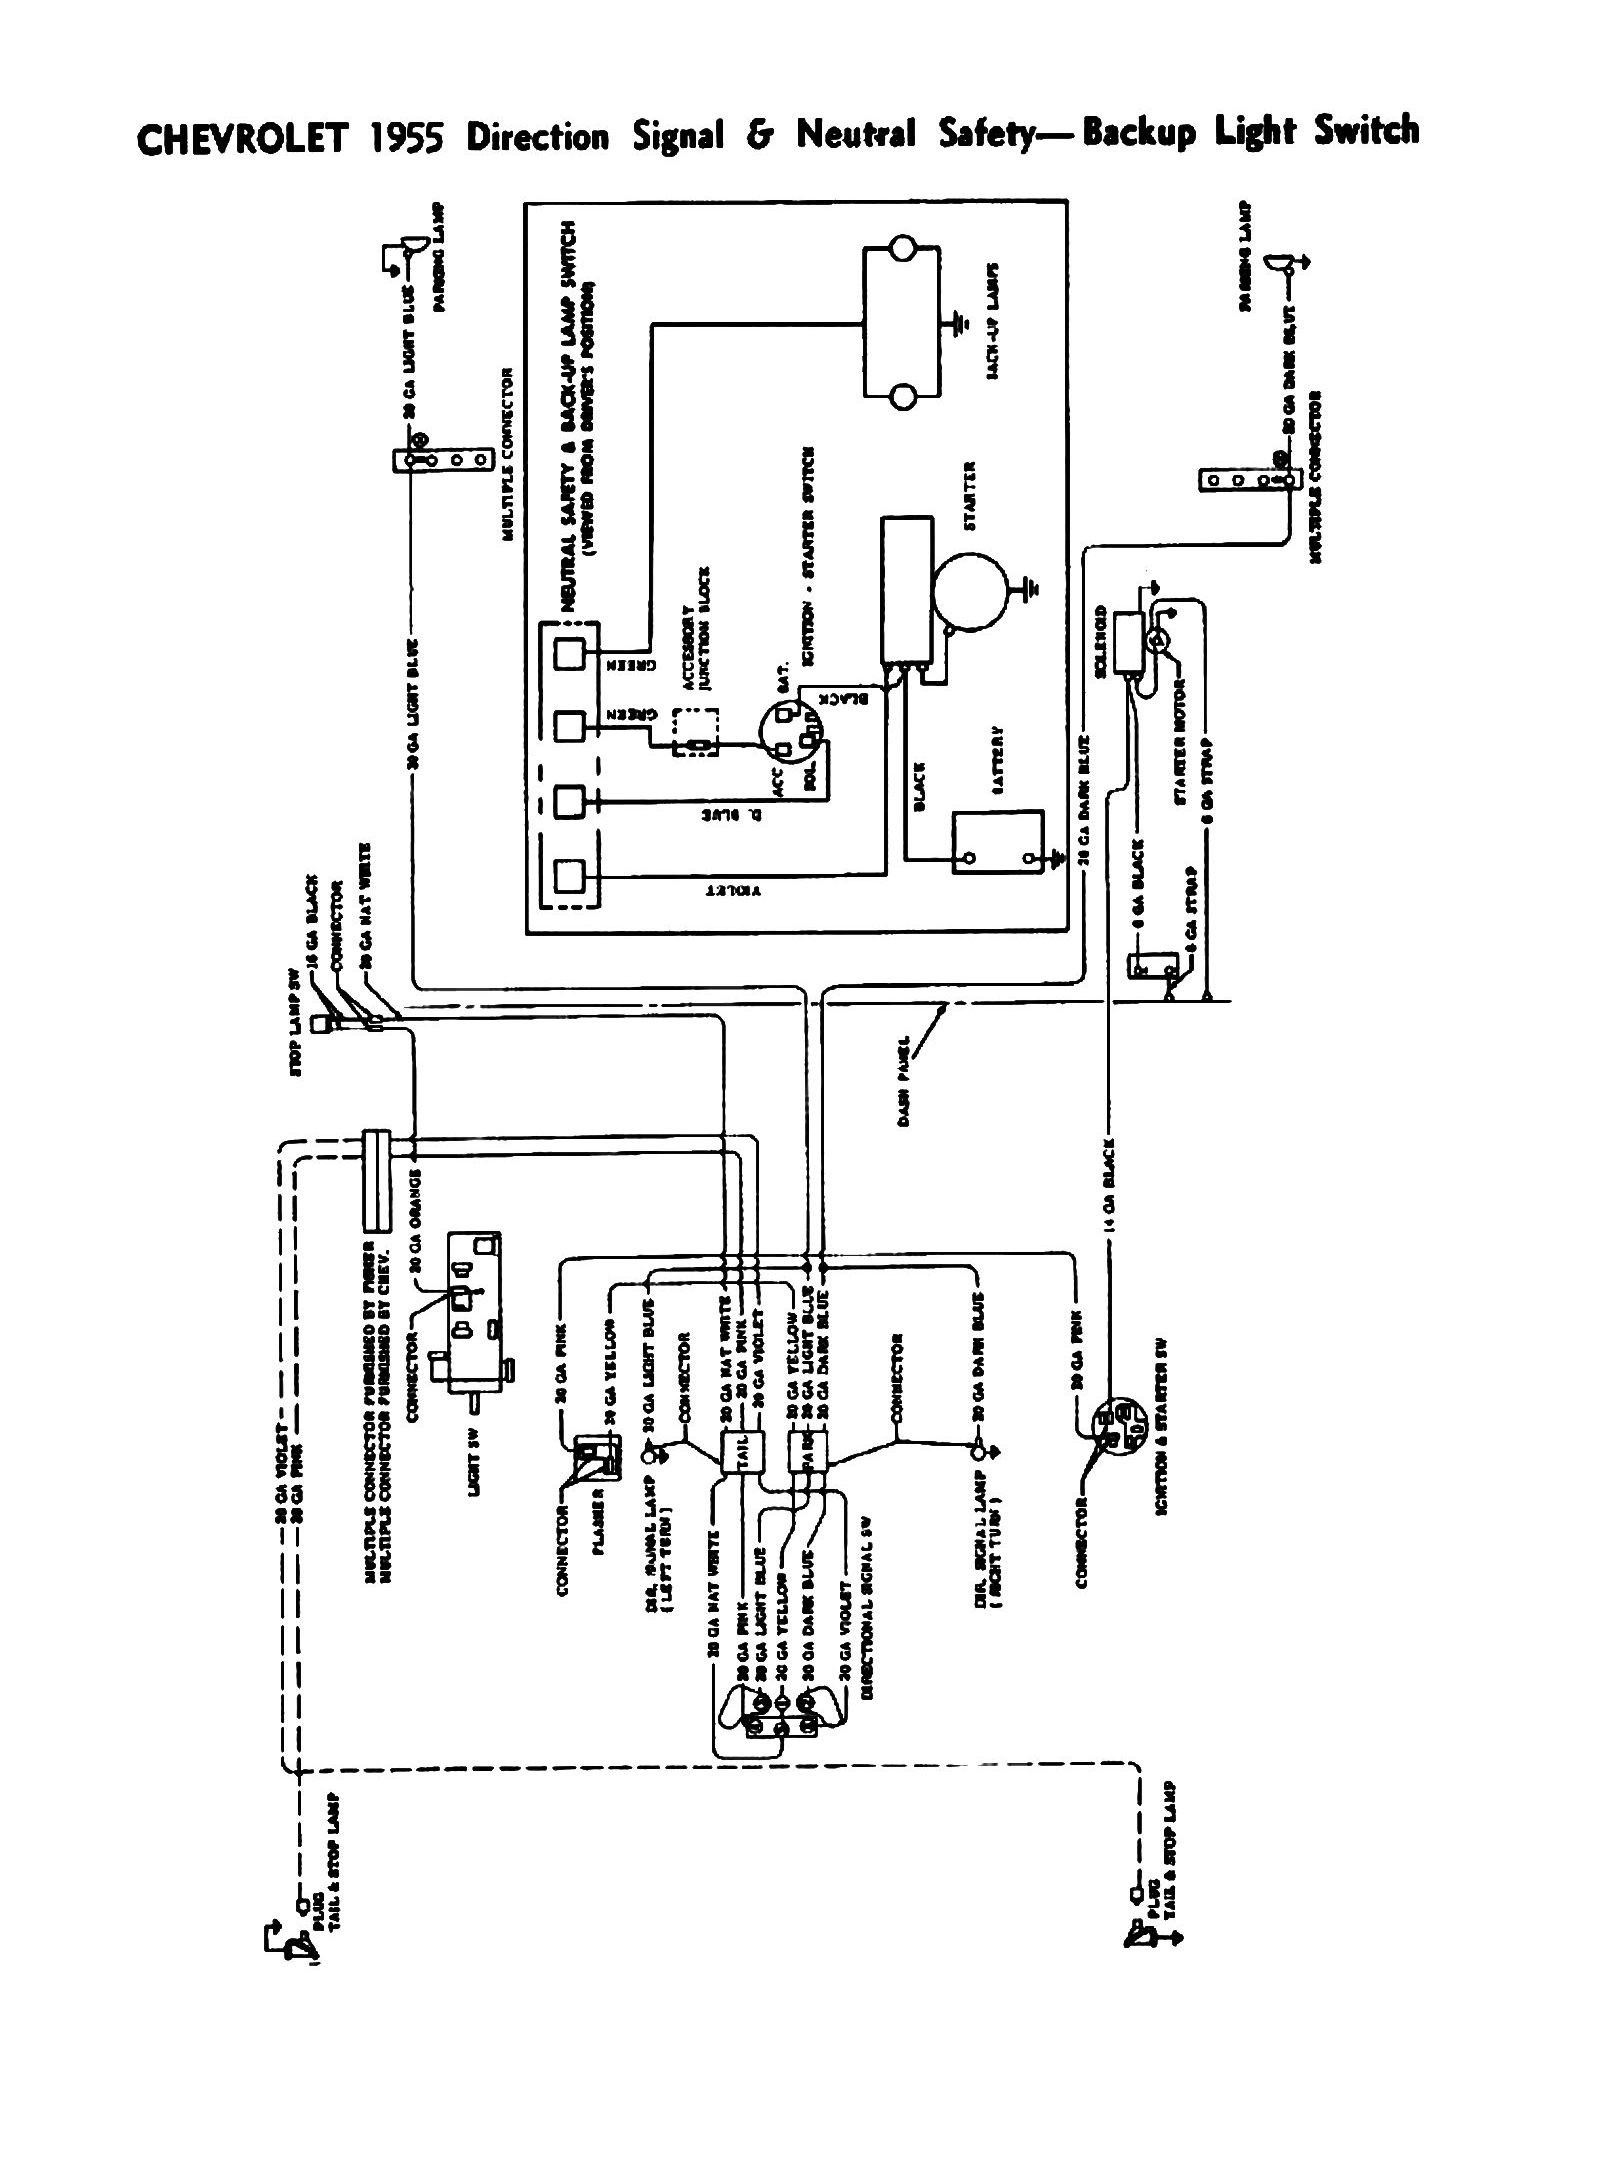 1951 chevy truck wiring diagram wiring diagram 1951 chevy